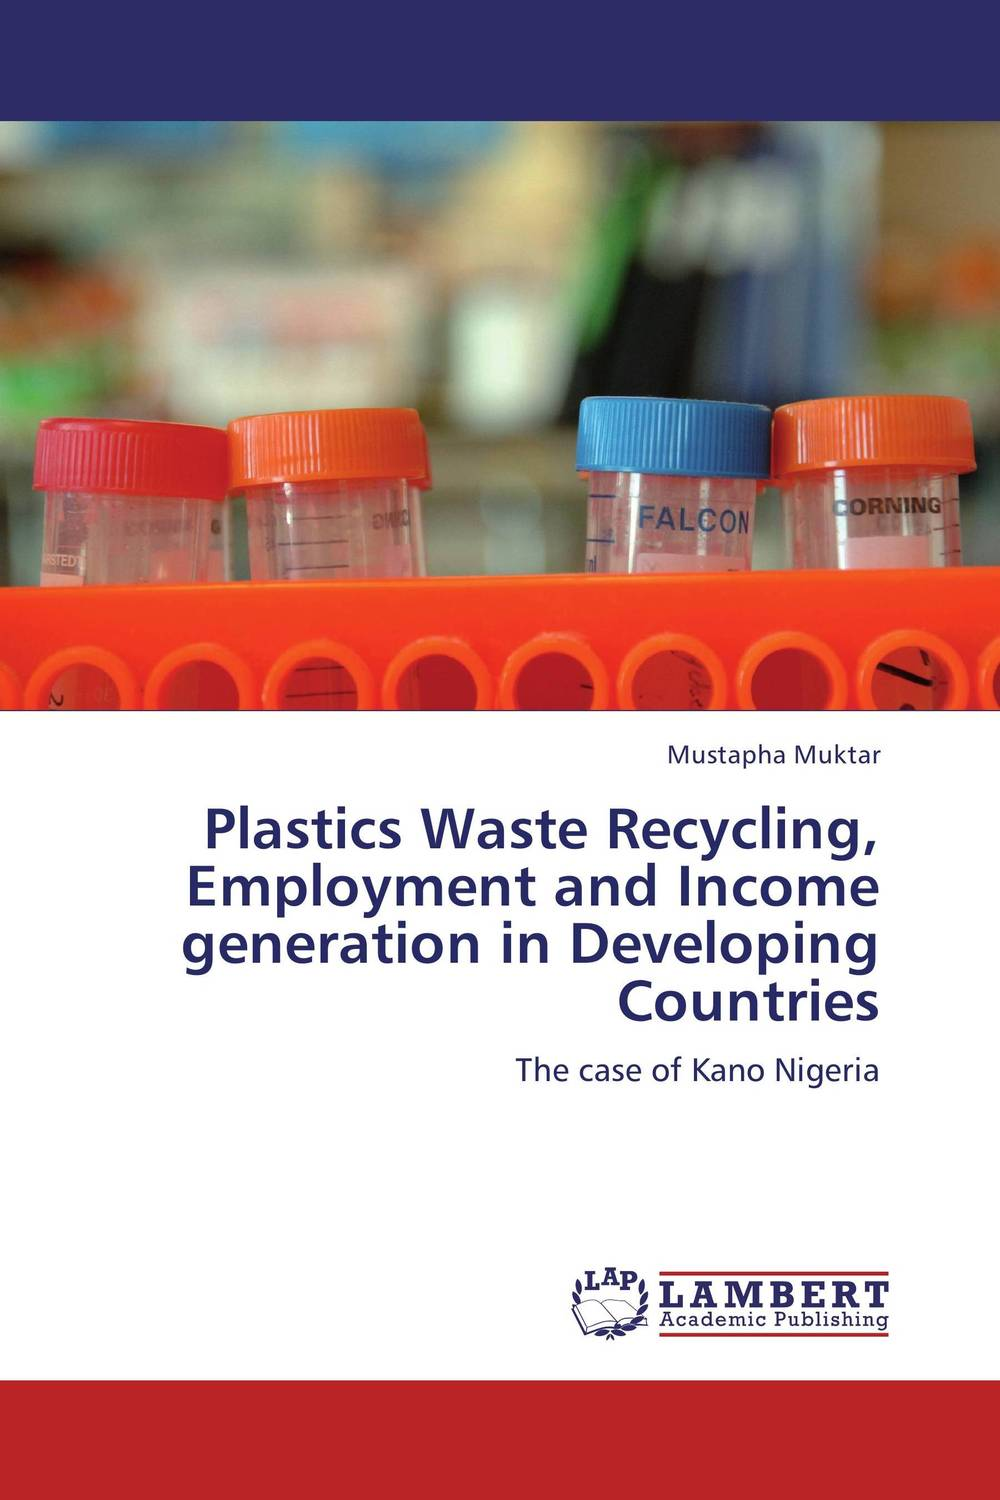 Plastics Waste Recycling, Employment and Income generation in Developing Countries recycling of waste materials